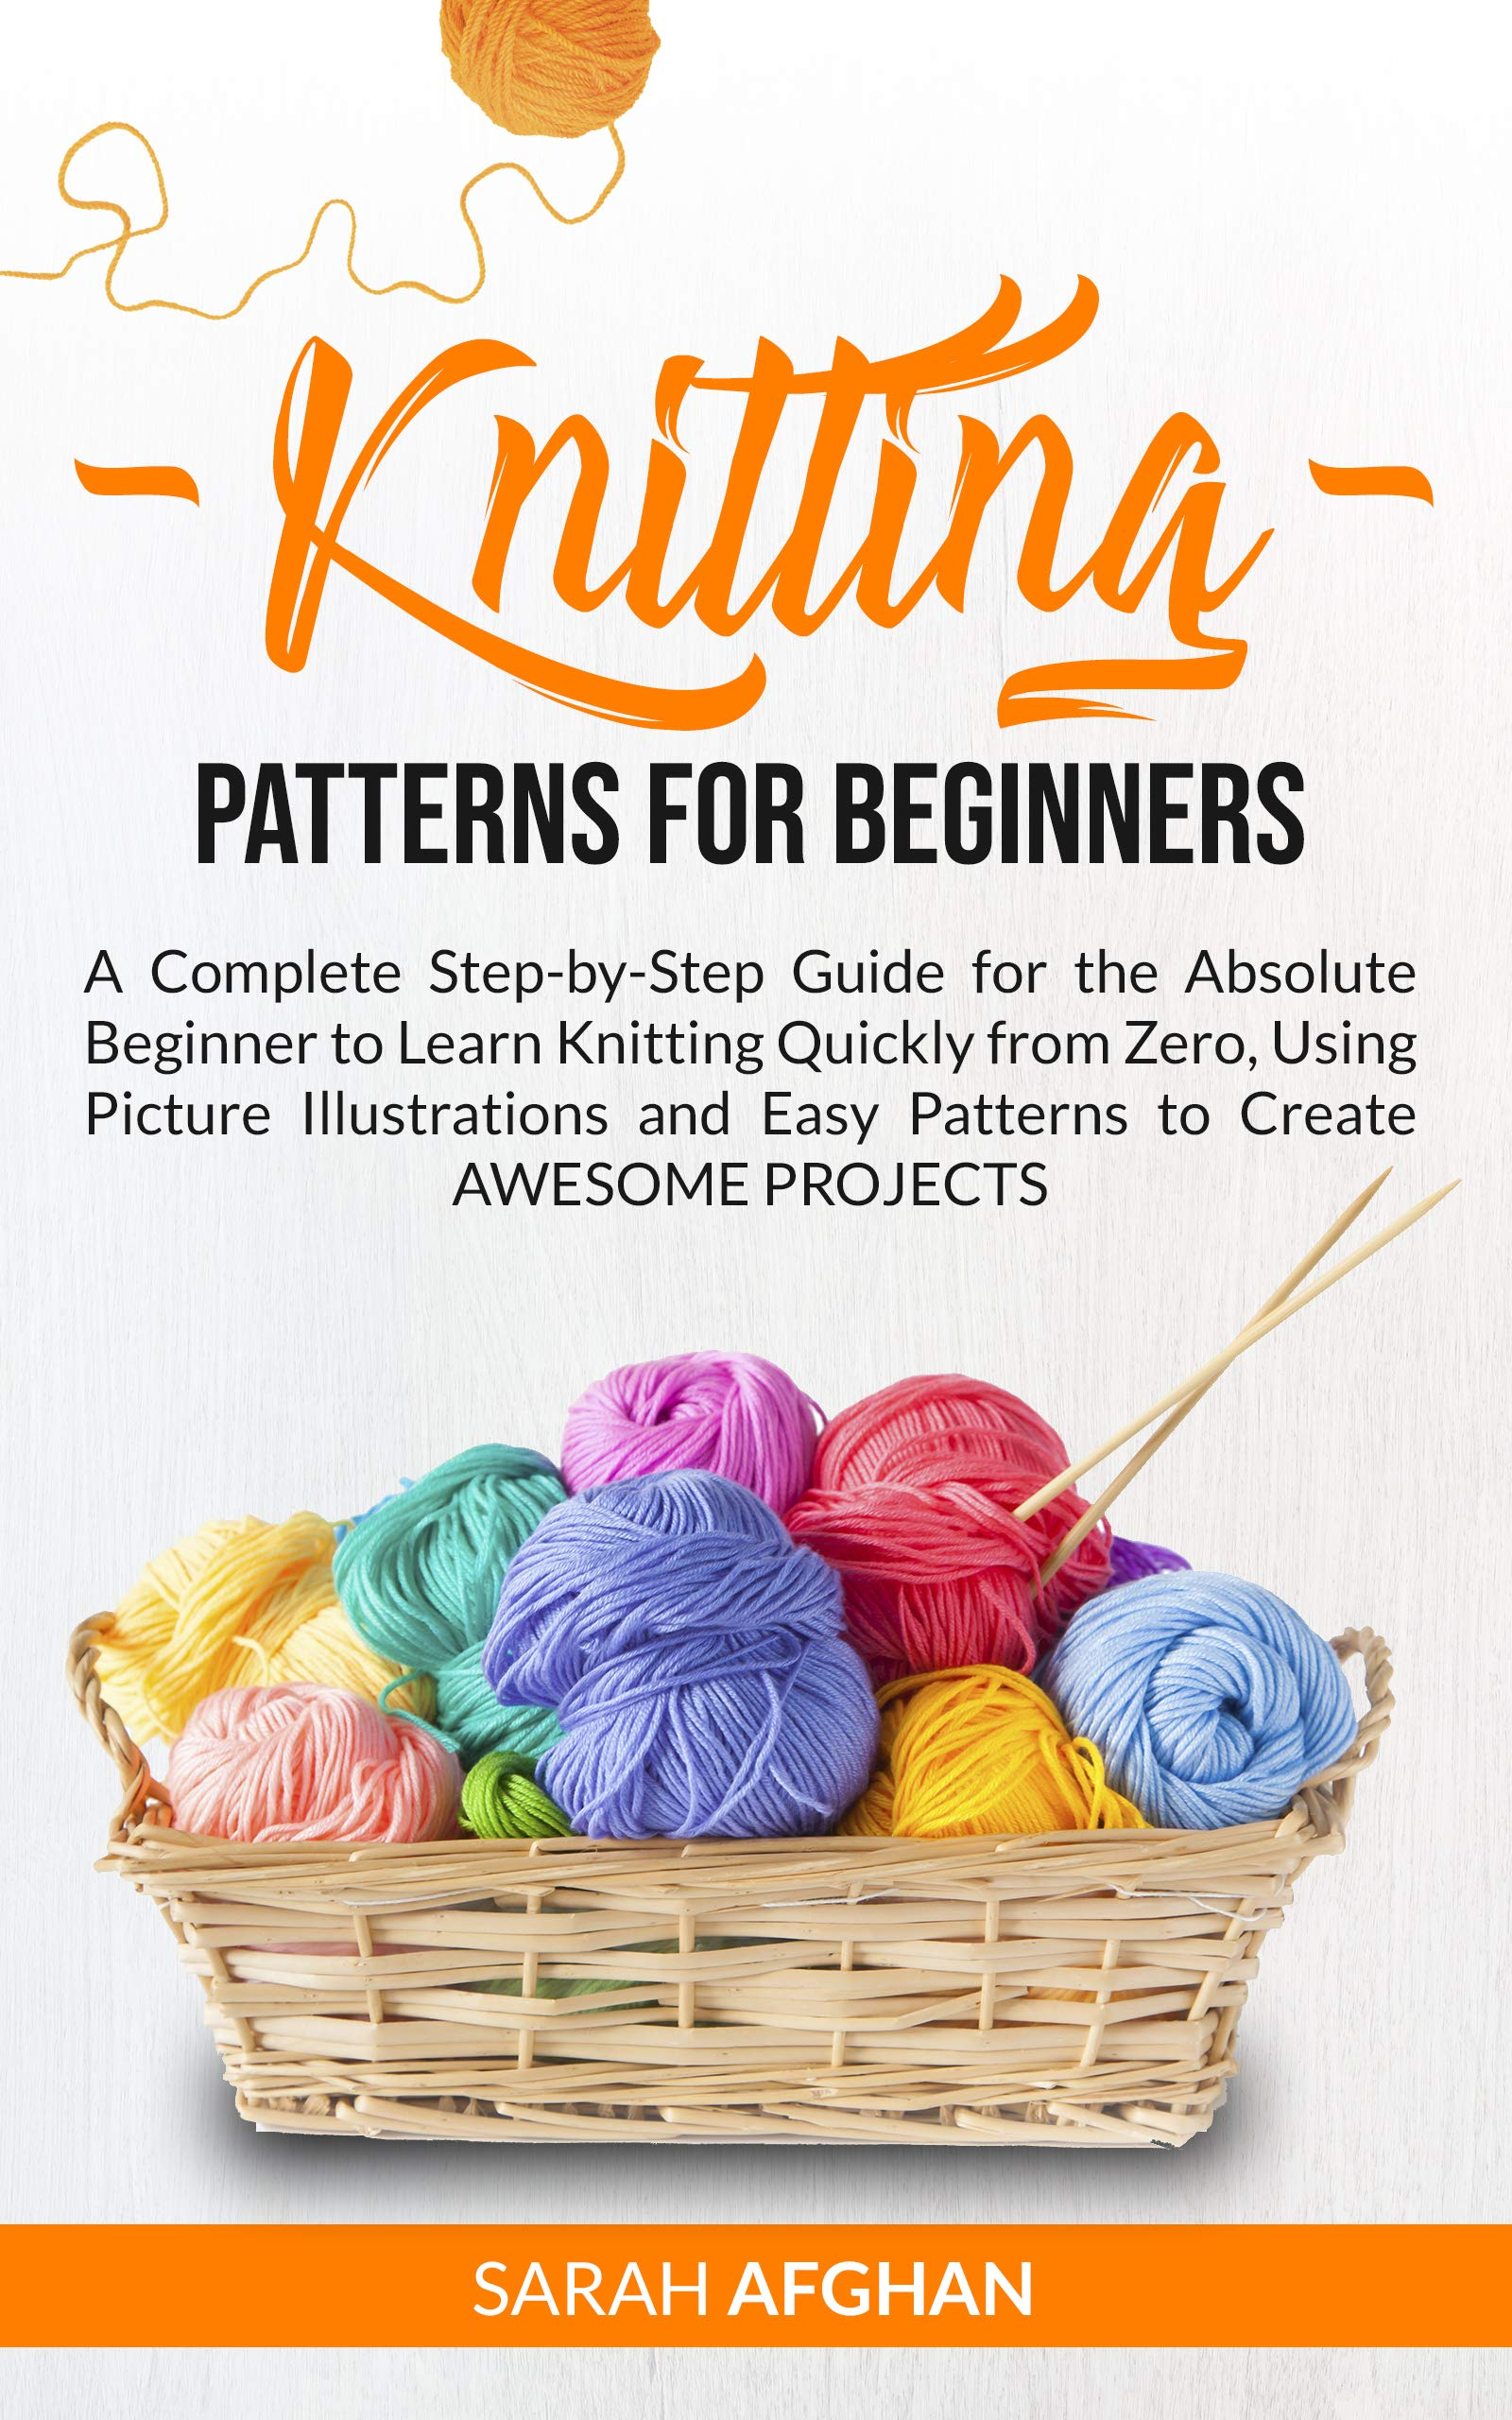 Knitting Patterns for Beginners: A Complete Step-by-Step Guide for the Absolute Beginner to Learn Knitting Quickly from Zero, Using Picture Illustrations and Easy Patterns to Create Awesome Projects